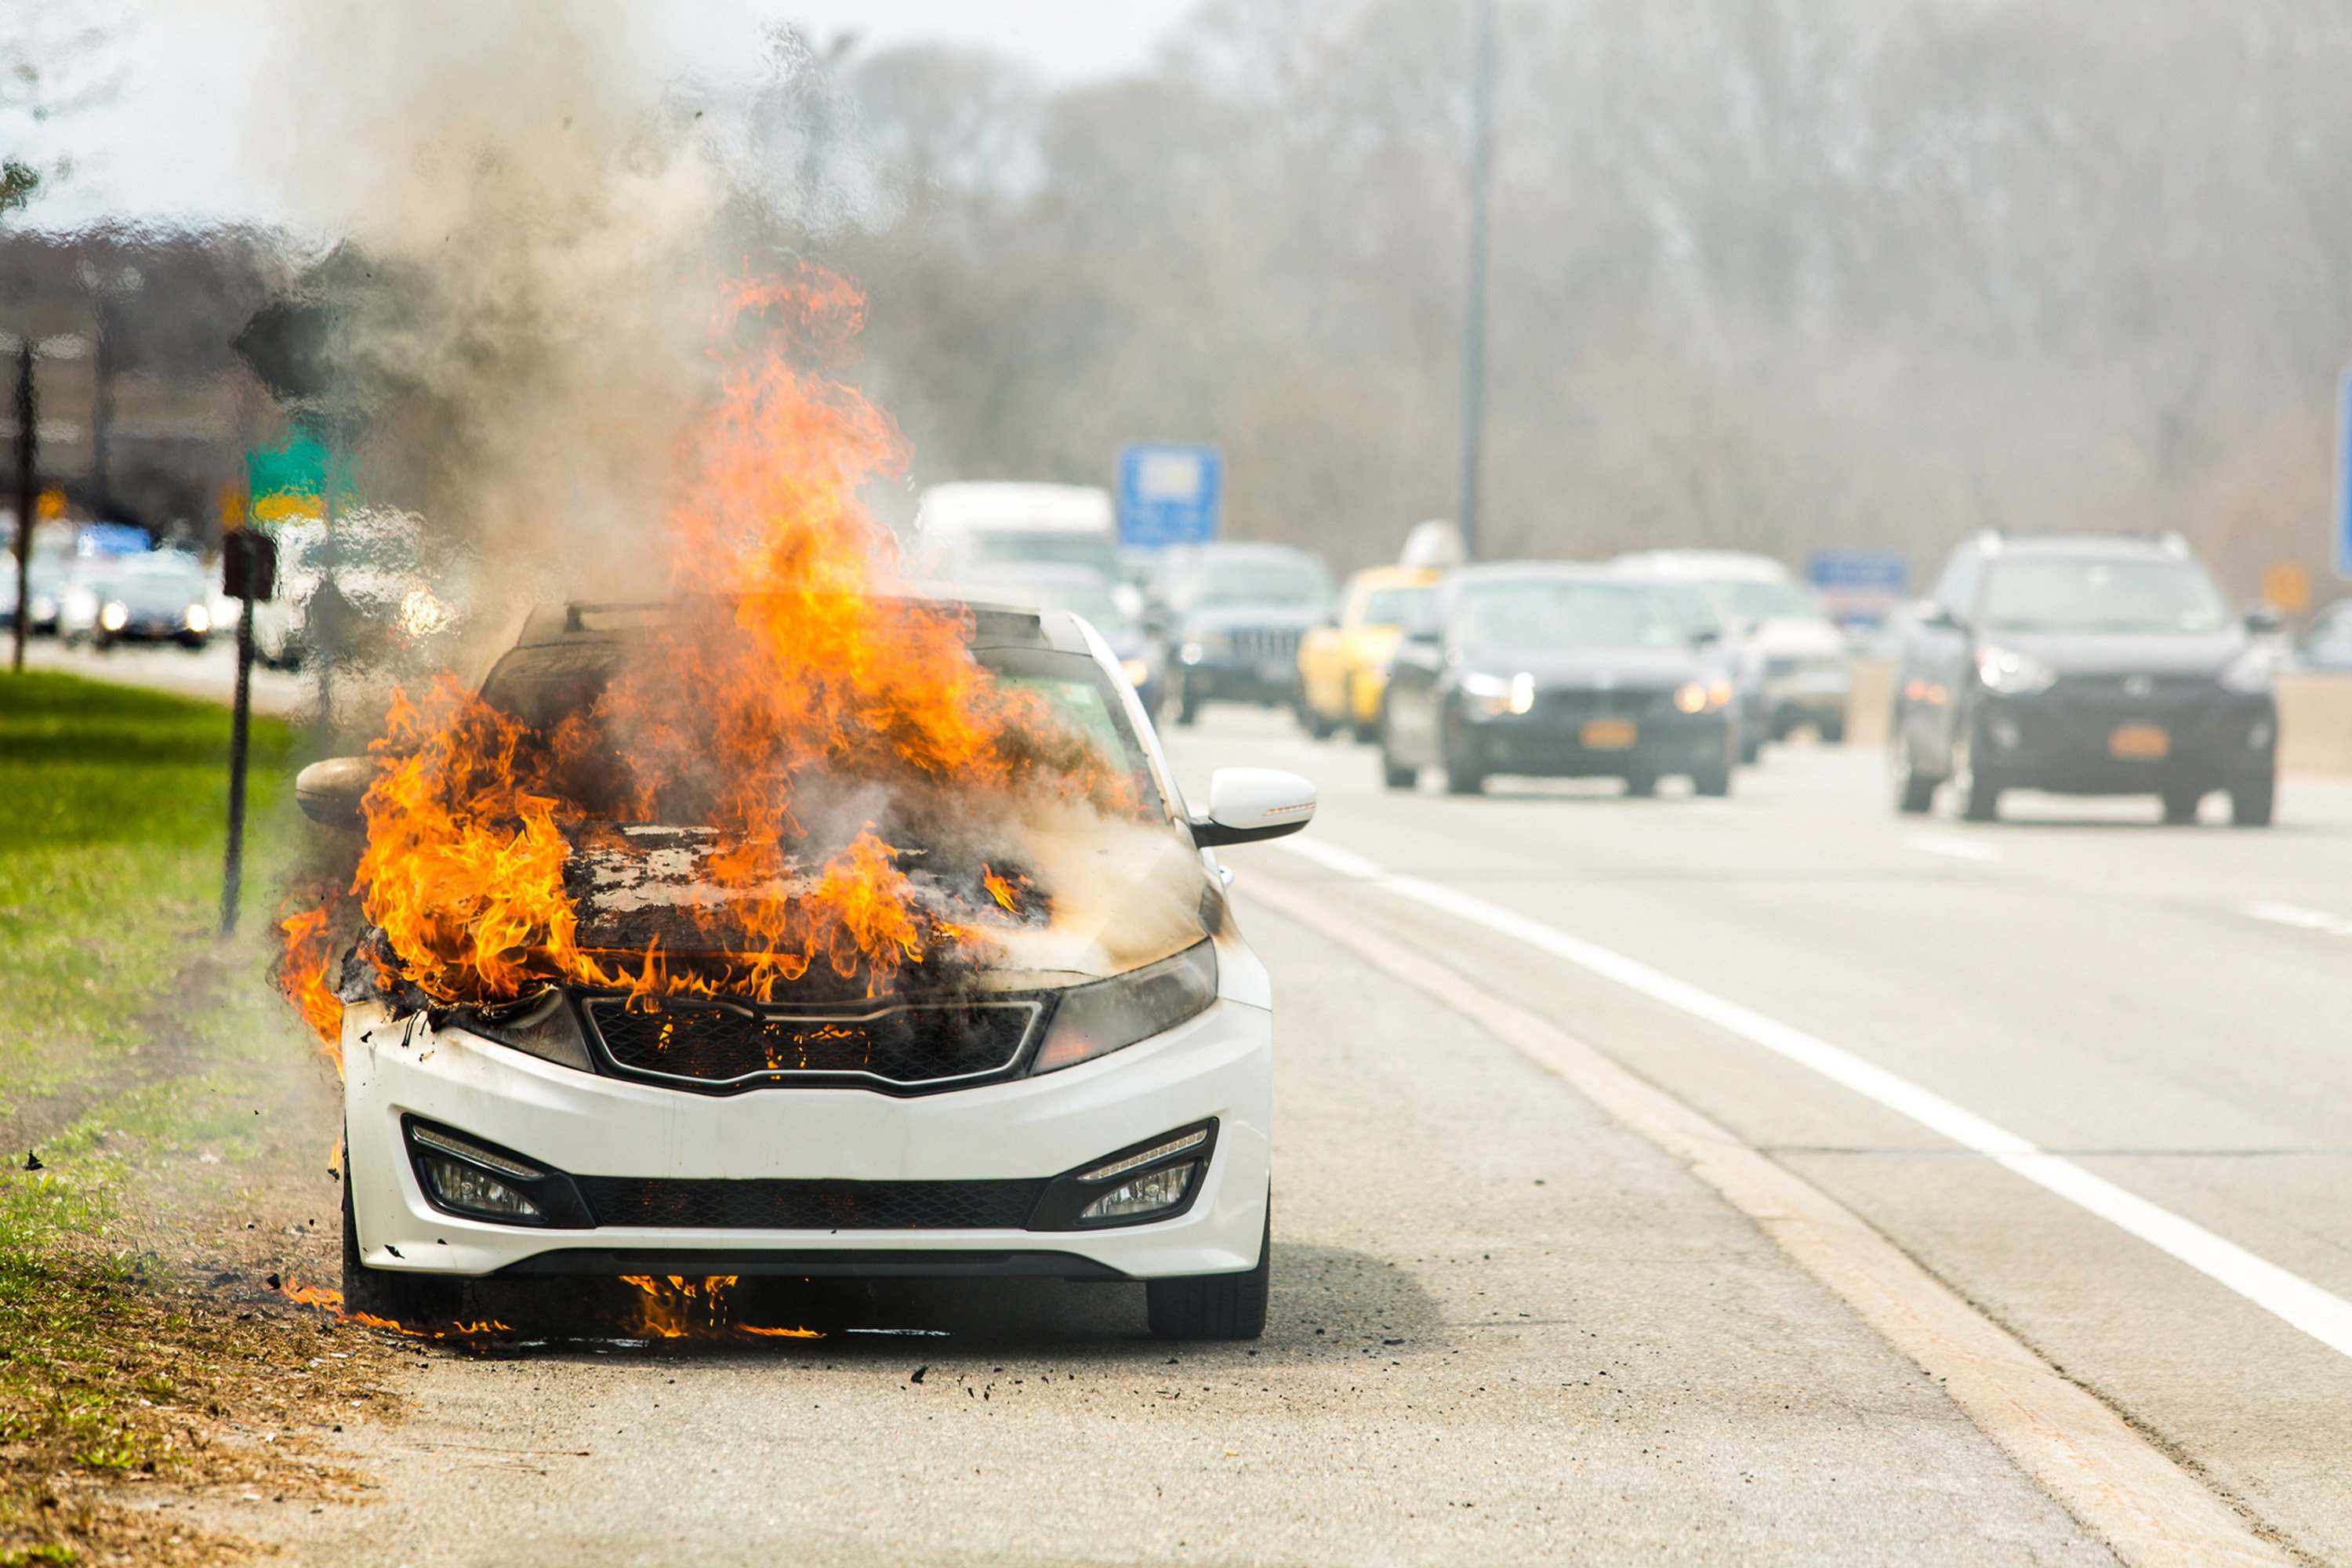 Under the Hood: What does it take to set a car on fire?